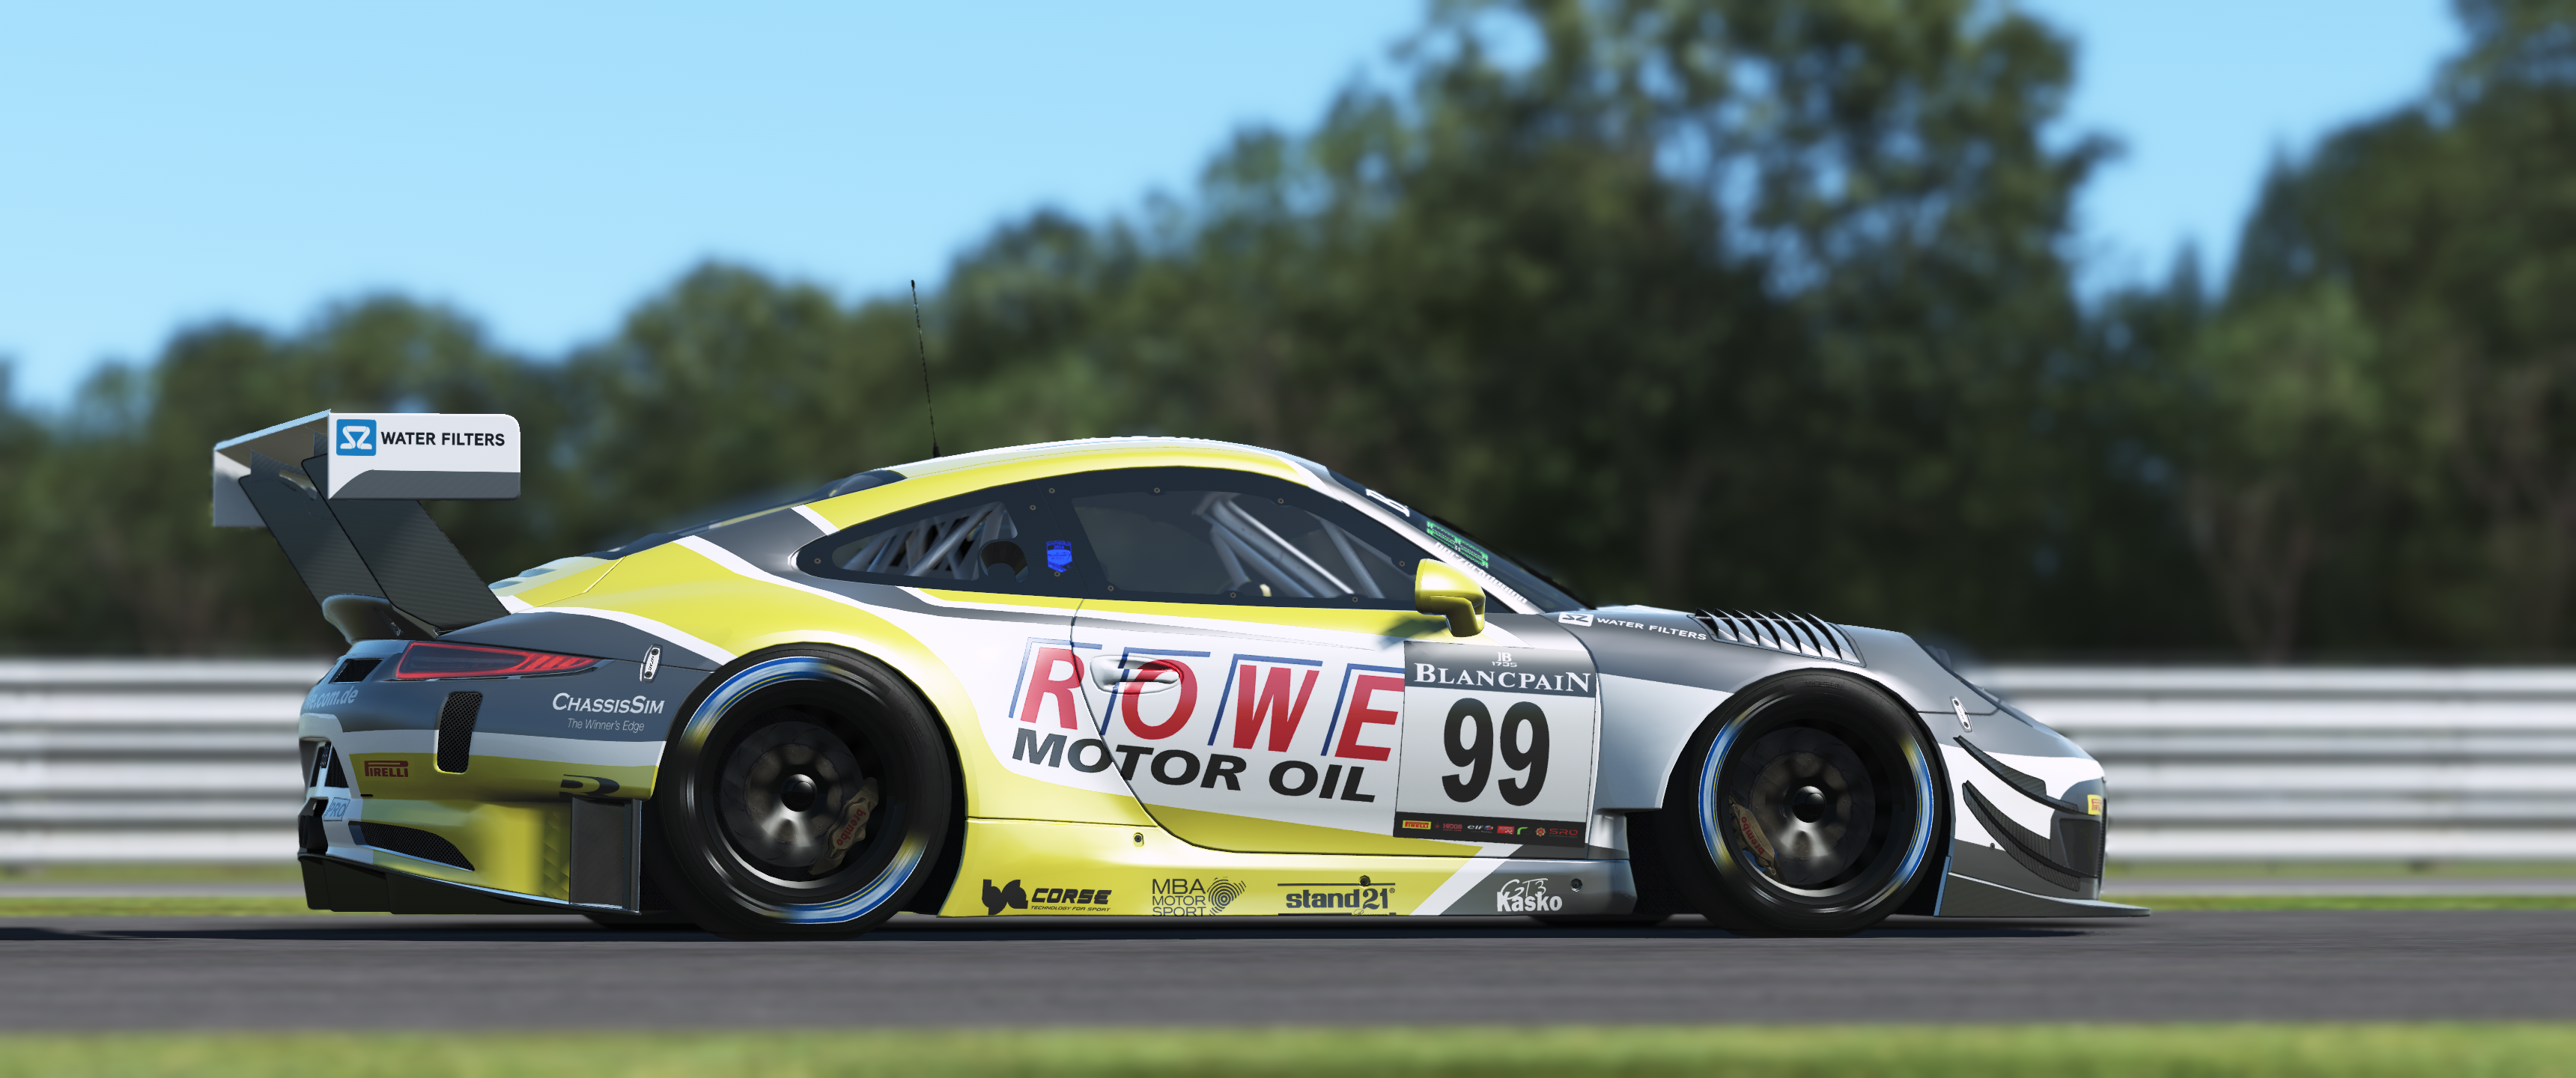 rFactor2 2019-02-27 17-16-22-26.png